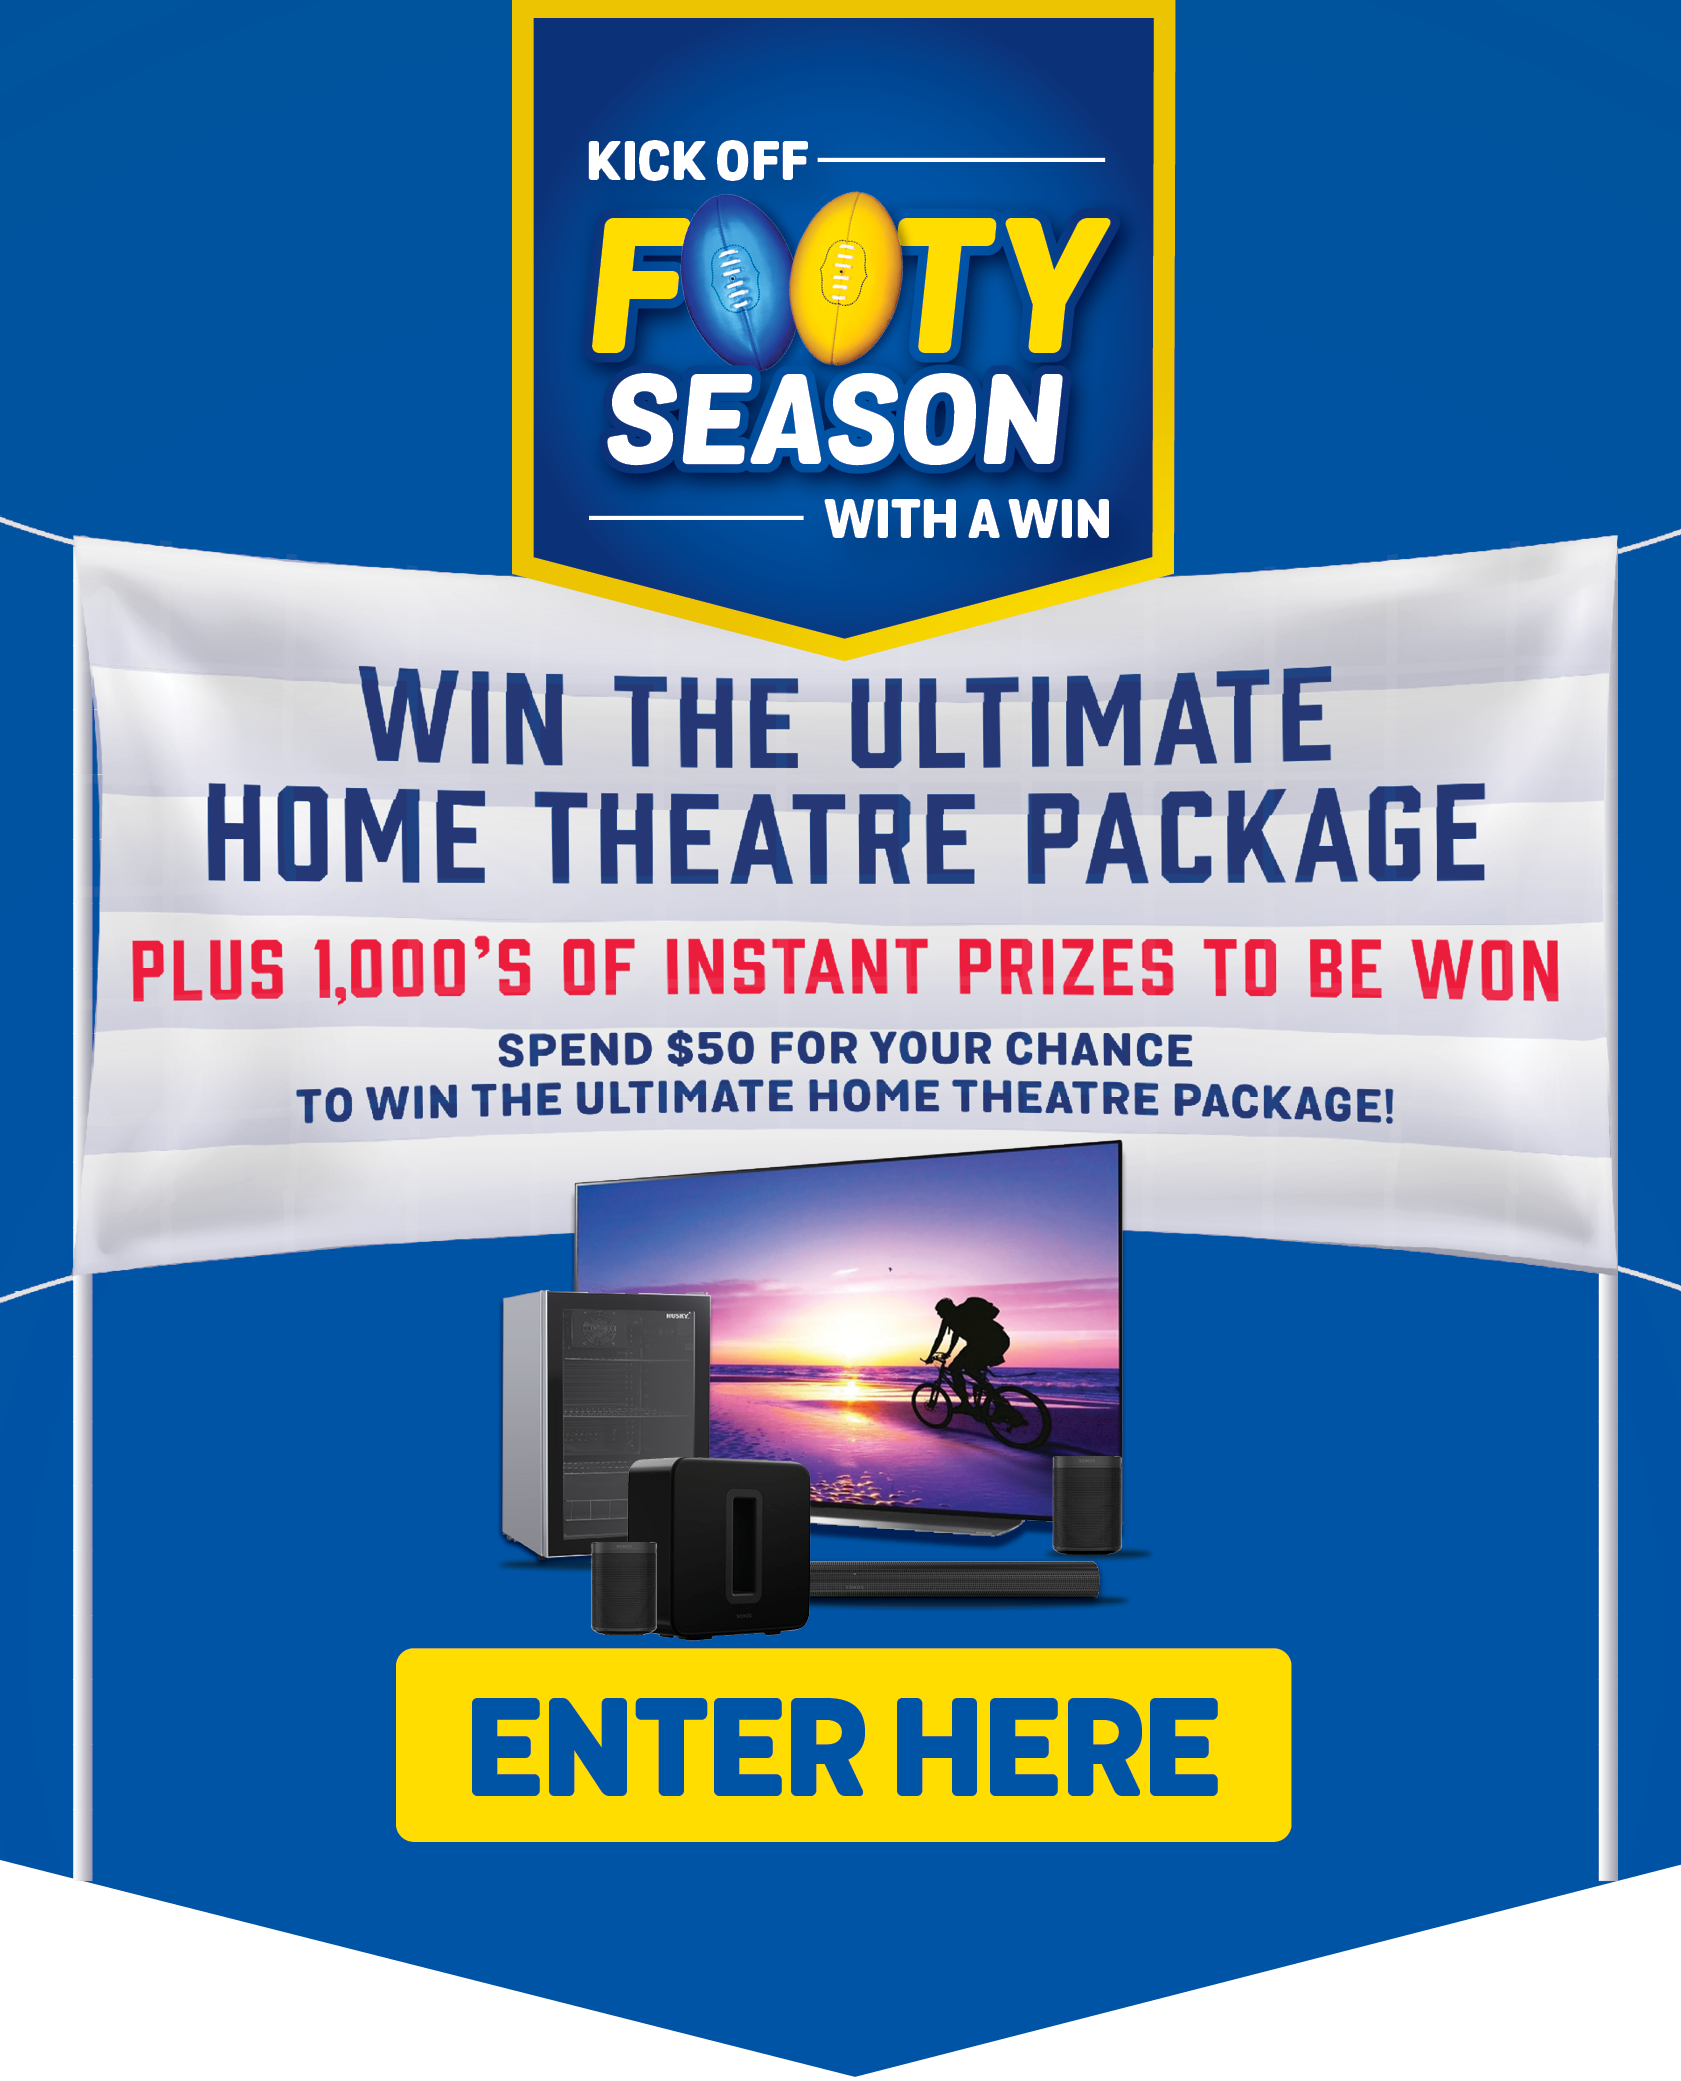 Enter now to go into the draw for your chance to win the Ultimate Home Theatre Package